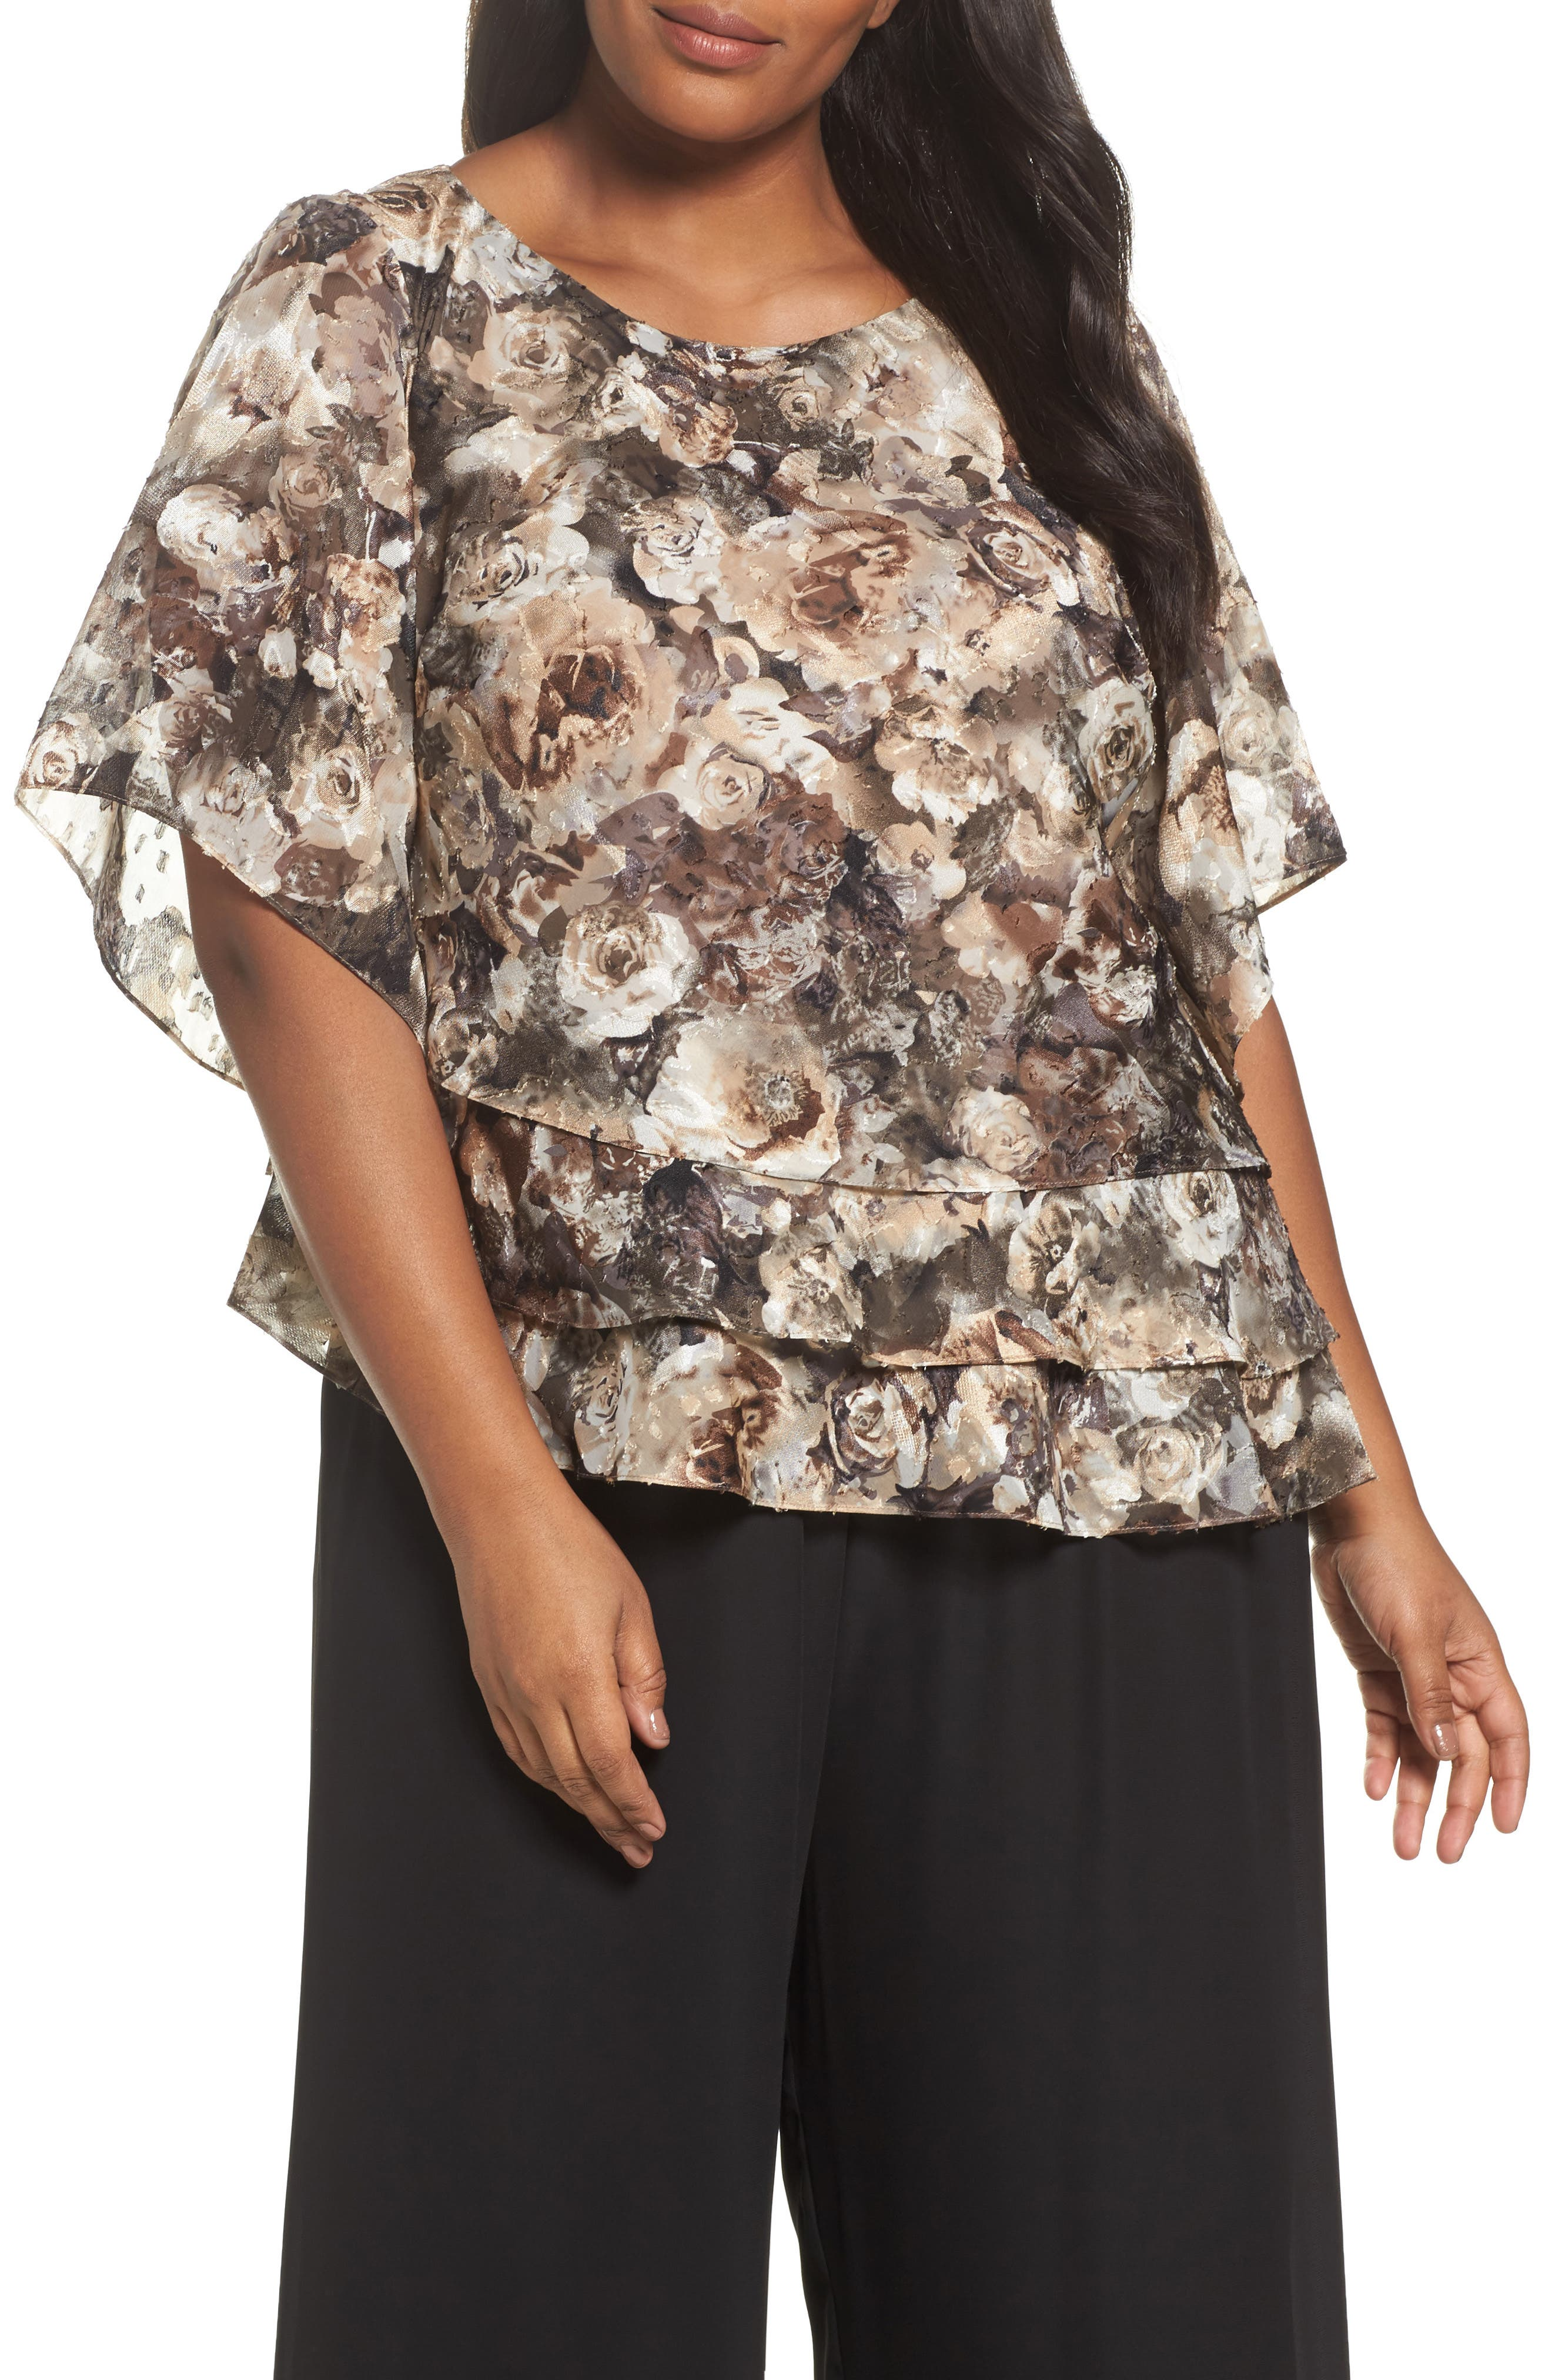 Alternate Image 1 Selected - Alex Evenings Tiered Chiffon Top (Plus Size)